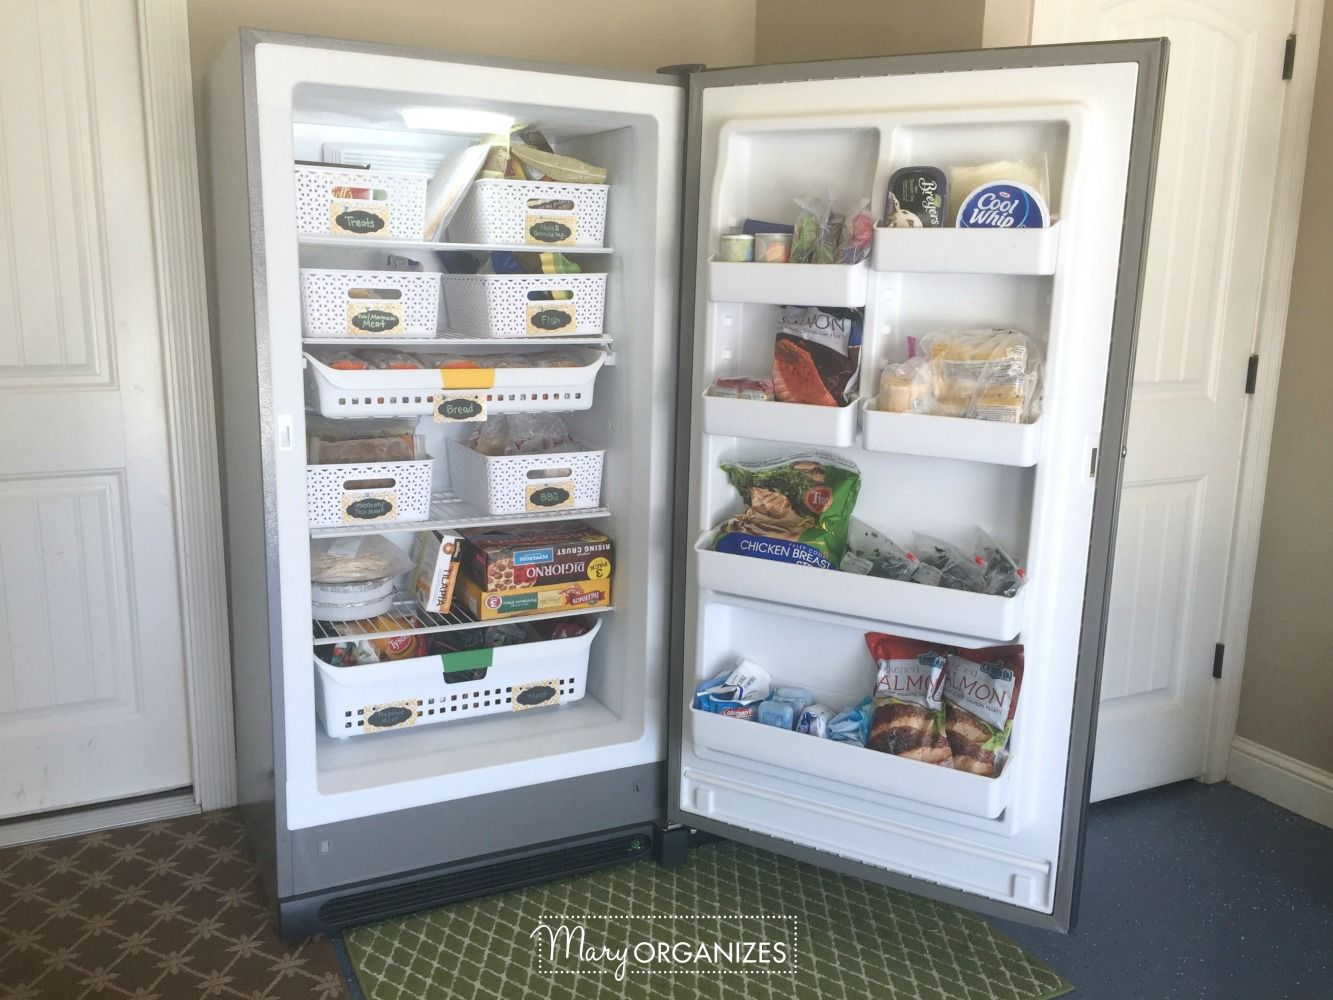 How To Organize A Stand Up Freezer In The Garage Freezer Storage Organization Deep Freezer Organization Diy Pantry Organization